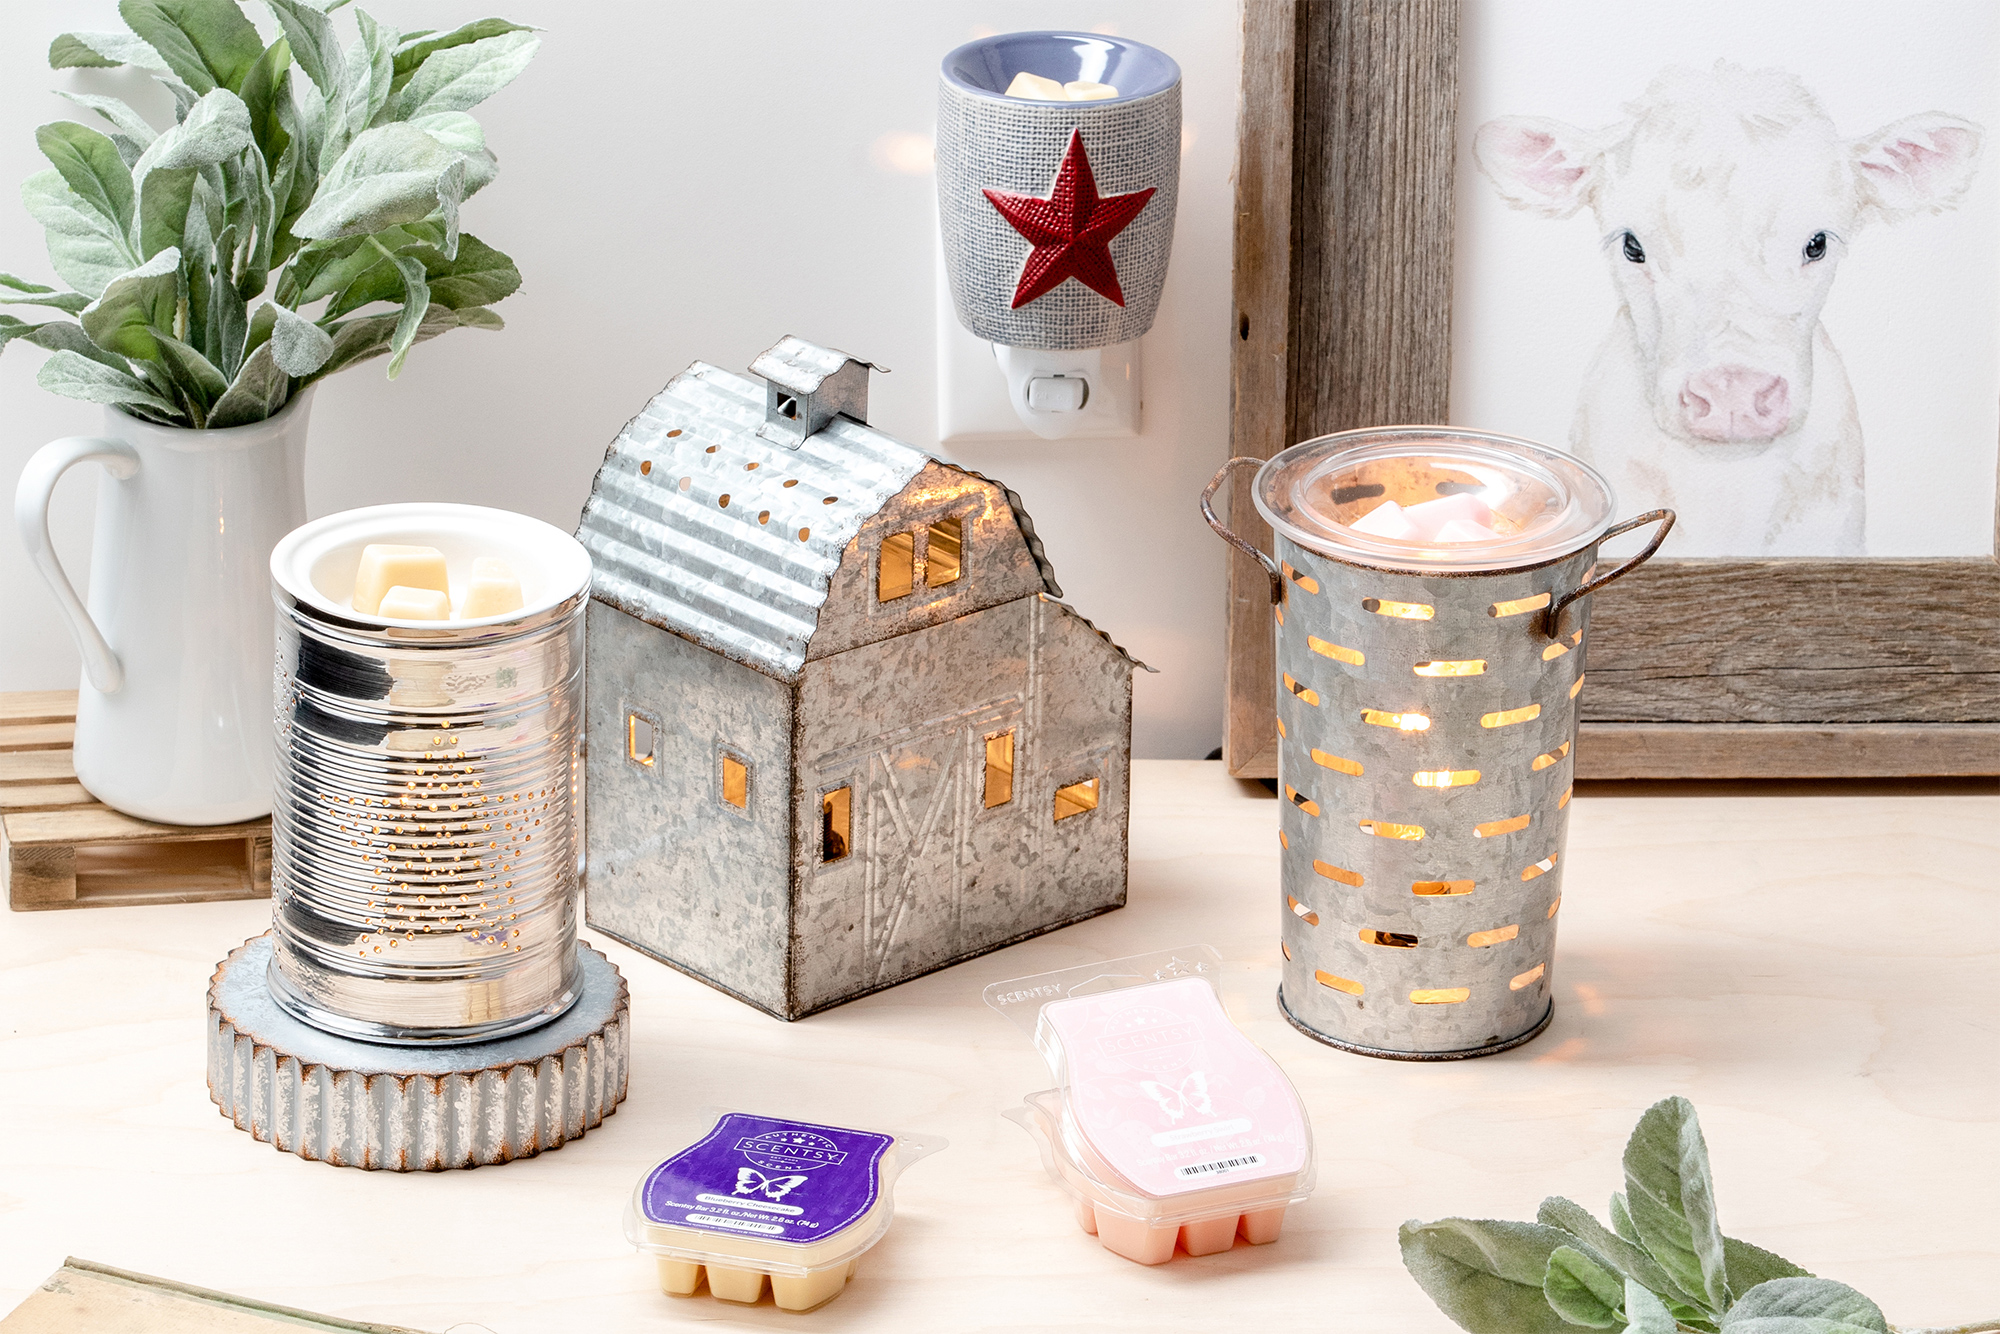 Scene of Scentsy tin warmers in a home